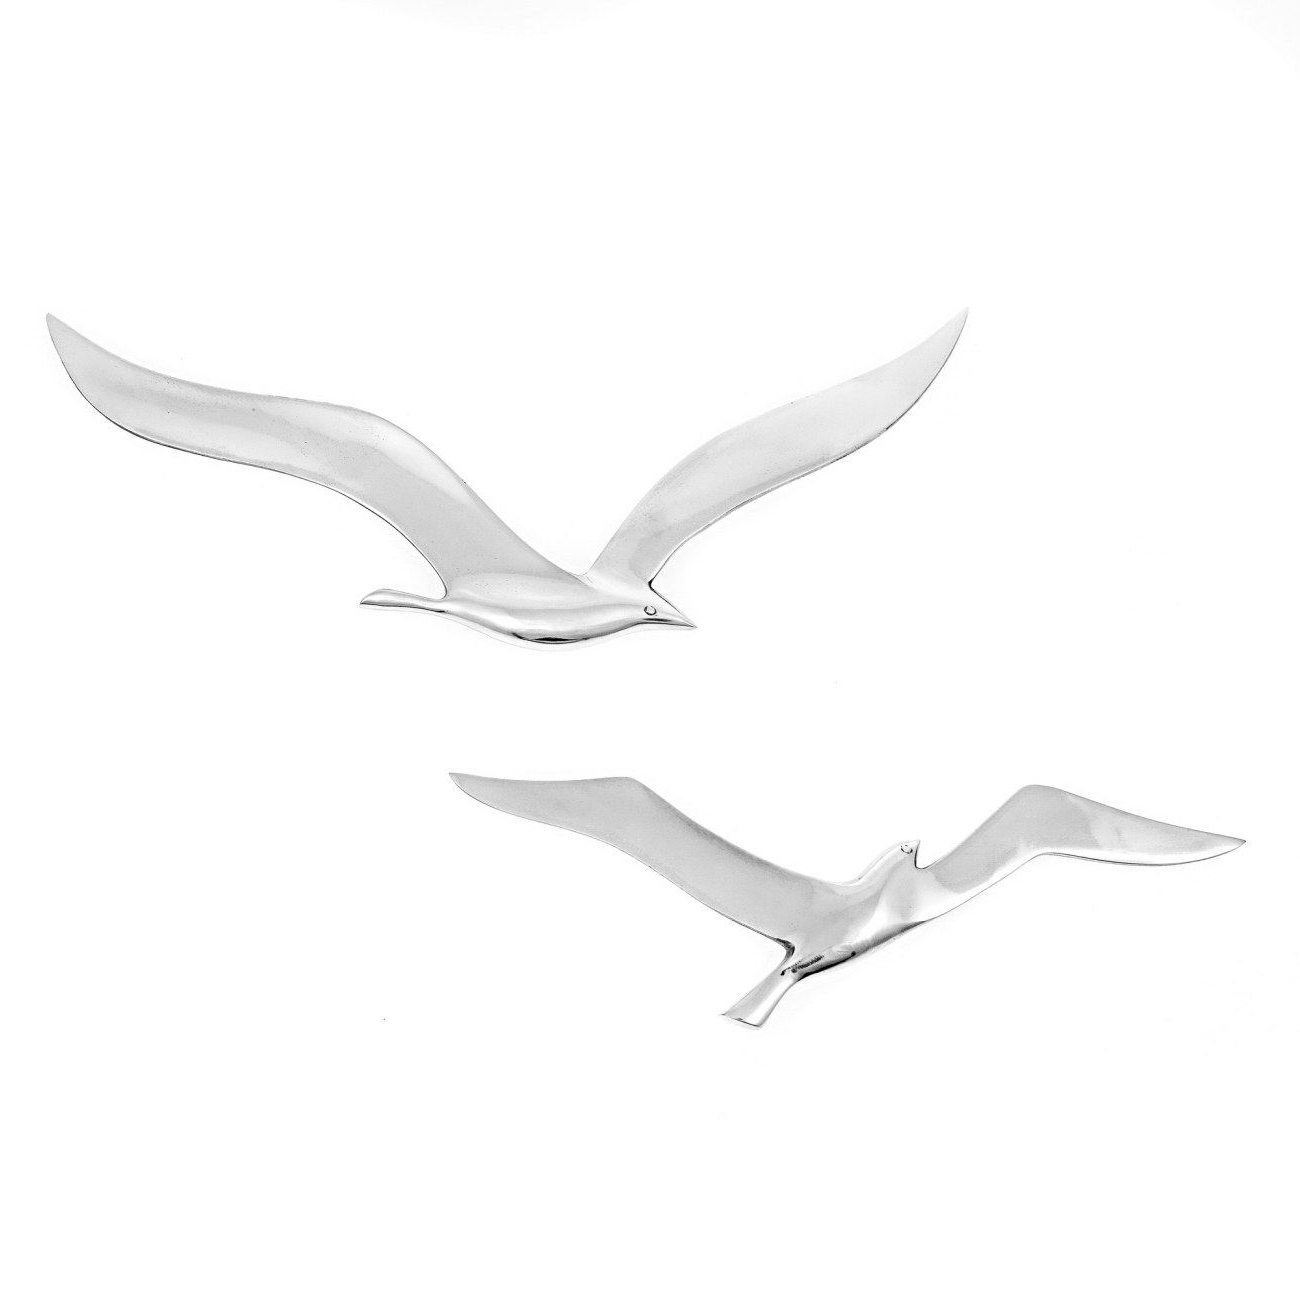 Seagull Metal Wall Art For Current Seagull Bird – Handmade Metal Wall Art Decor – Silver, Large 37Cm (View 8 of 15)